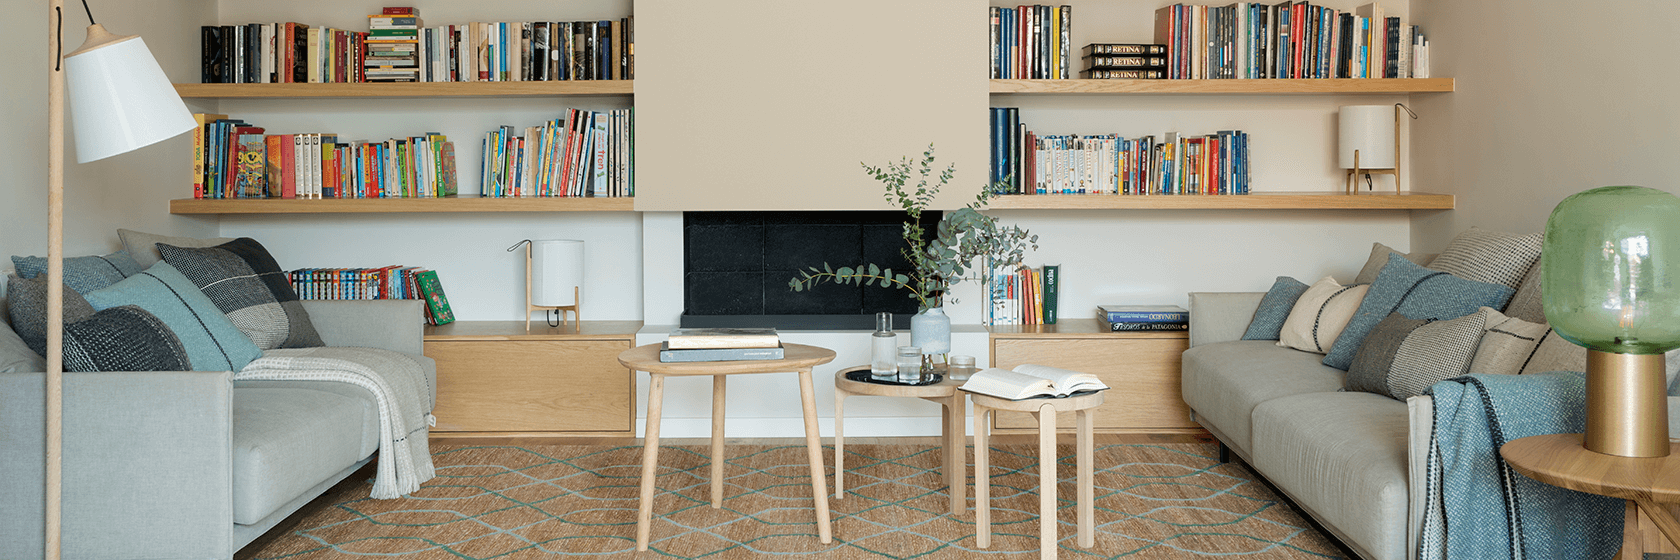 Why should you hire an Interior Designer? | The Room Studio